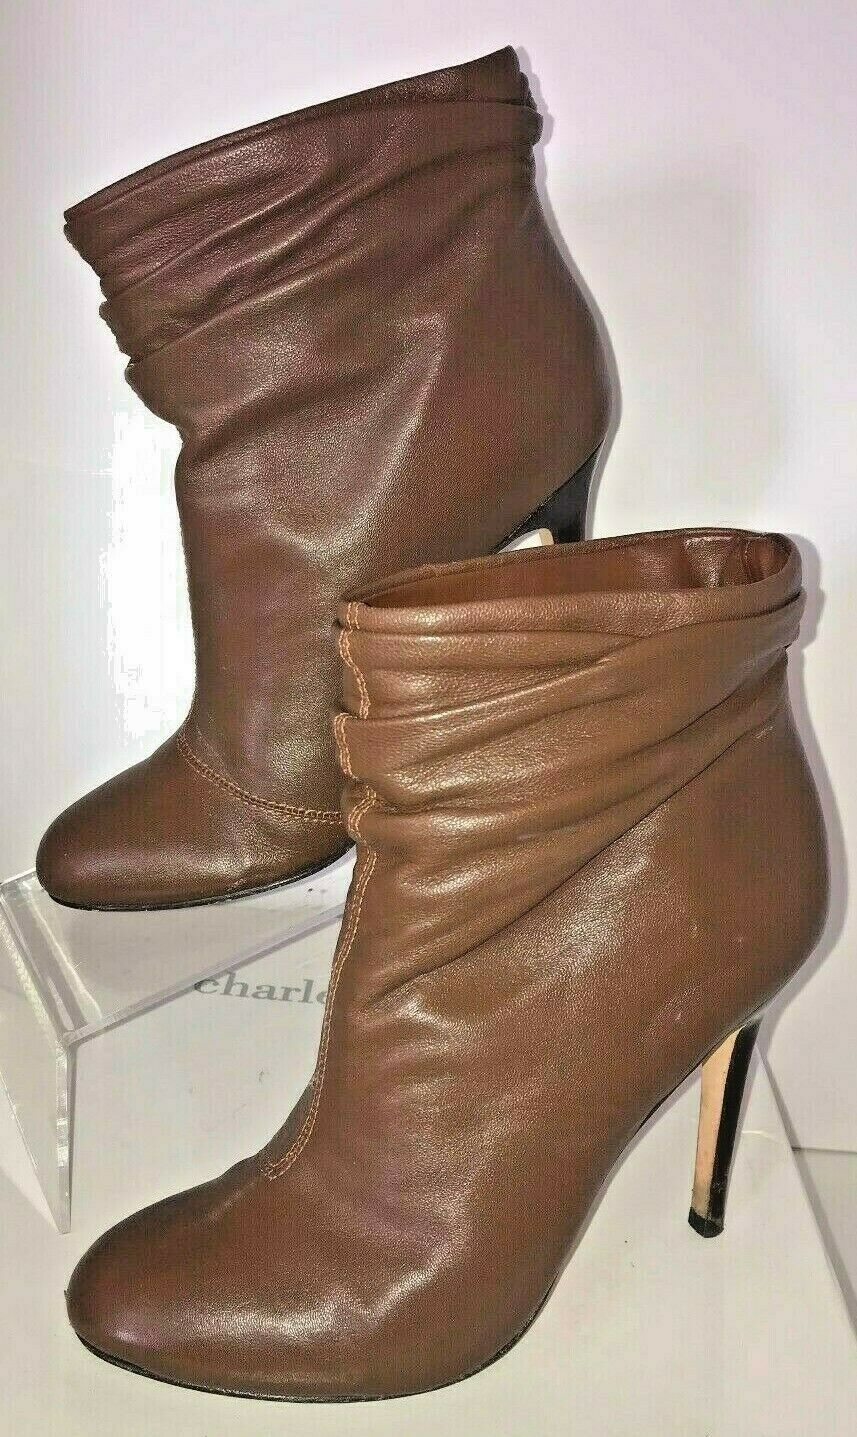 Charles David Leather Boots women's shoes boots Heels Stiletto Soft Saundra